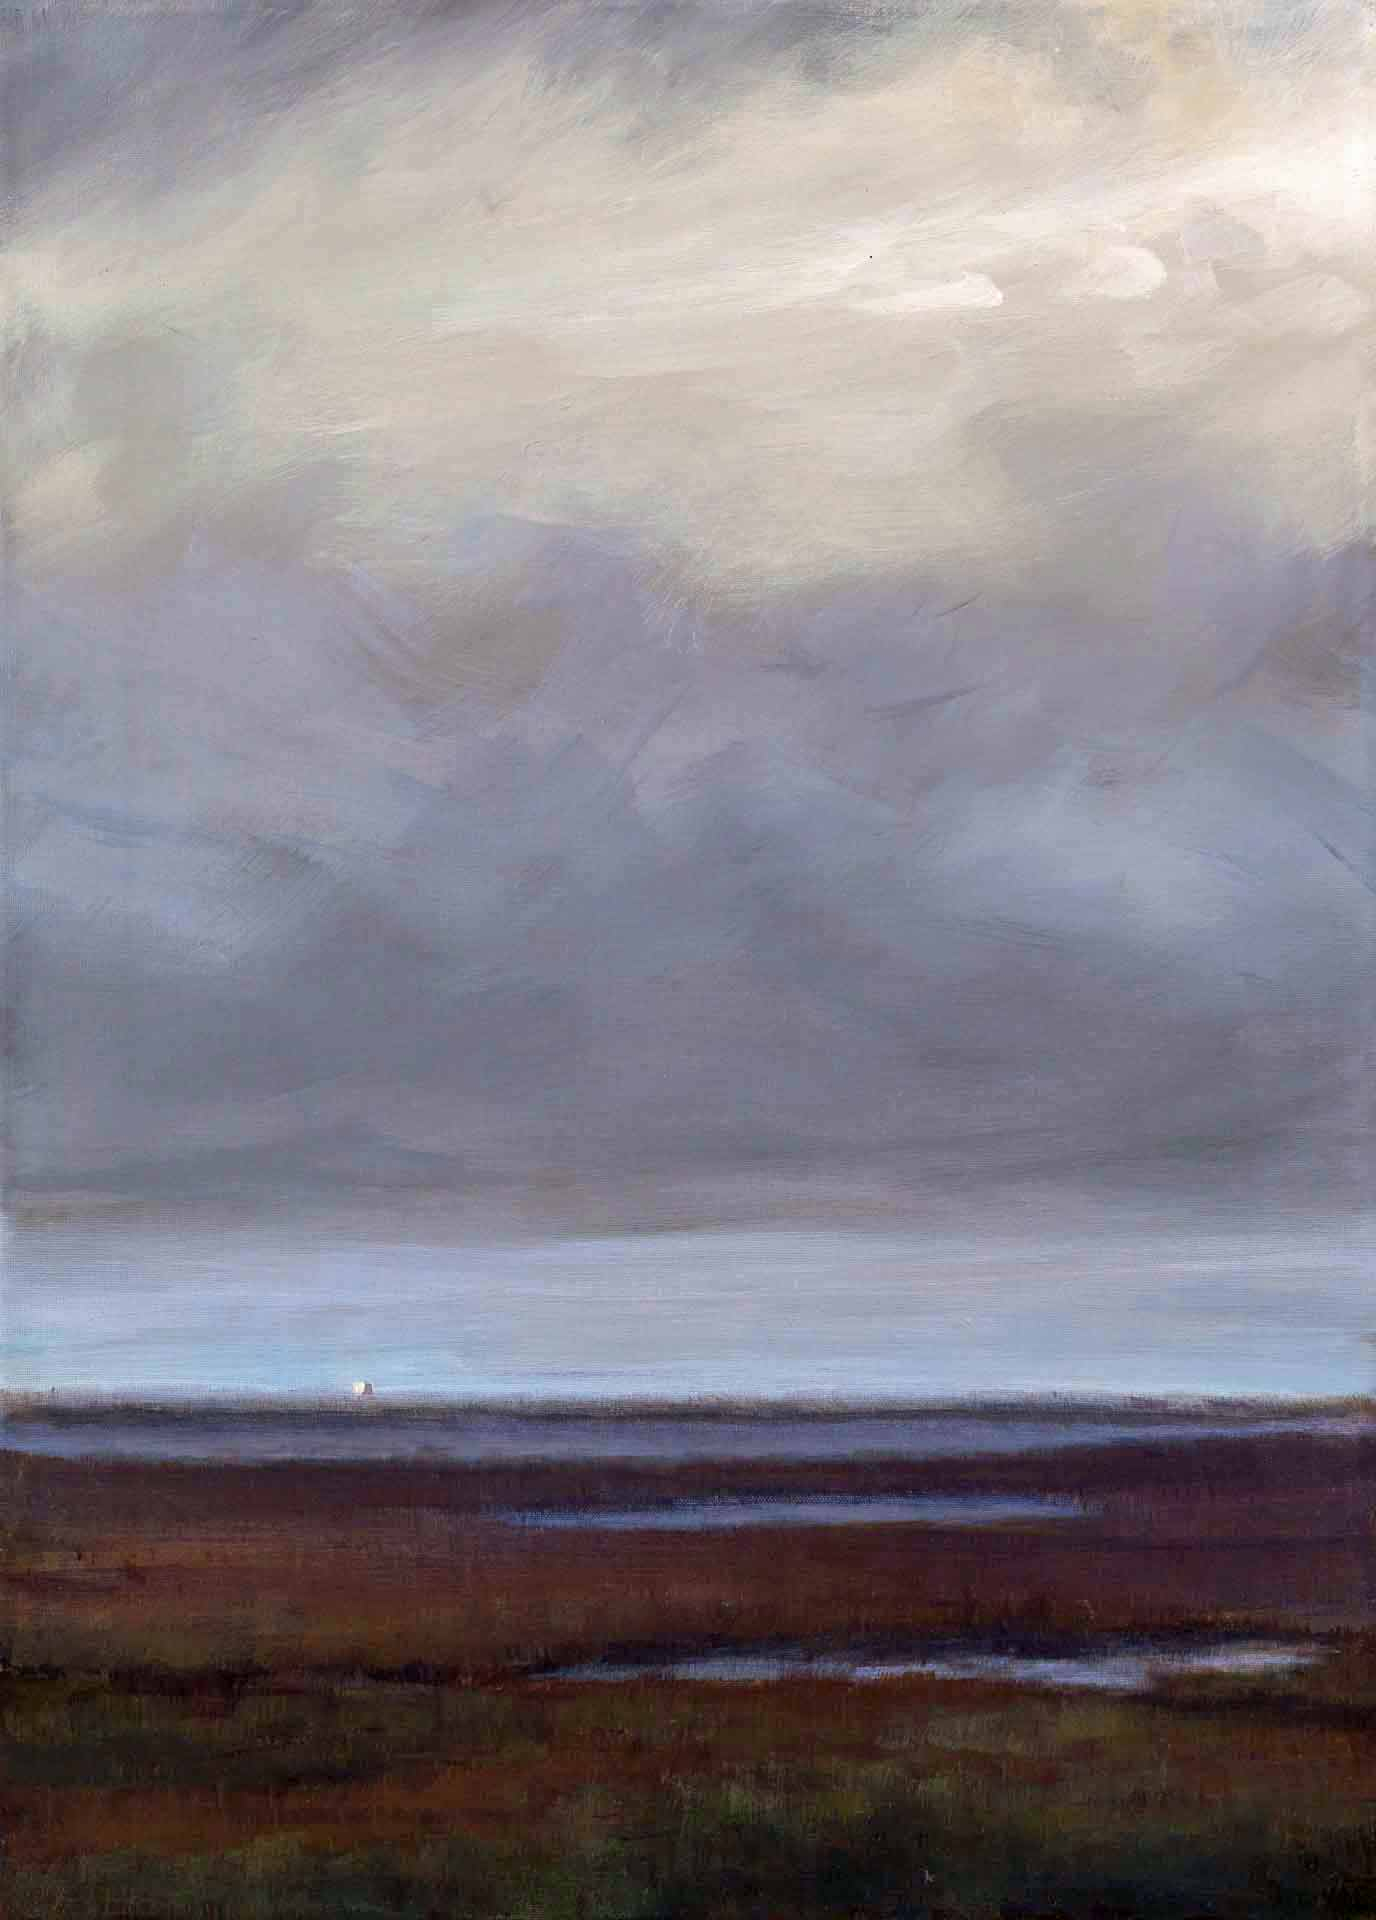 Twilight At Loch Bee on South Uist - Landscape Painting By Victoria Orr Ewing